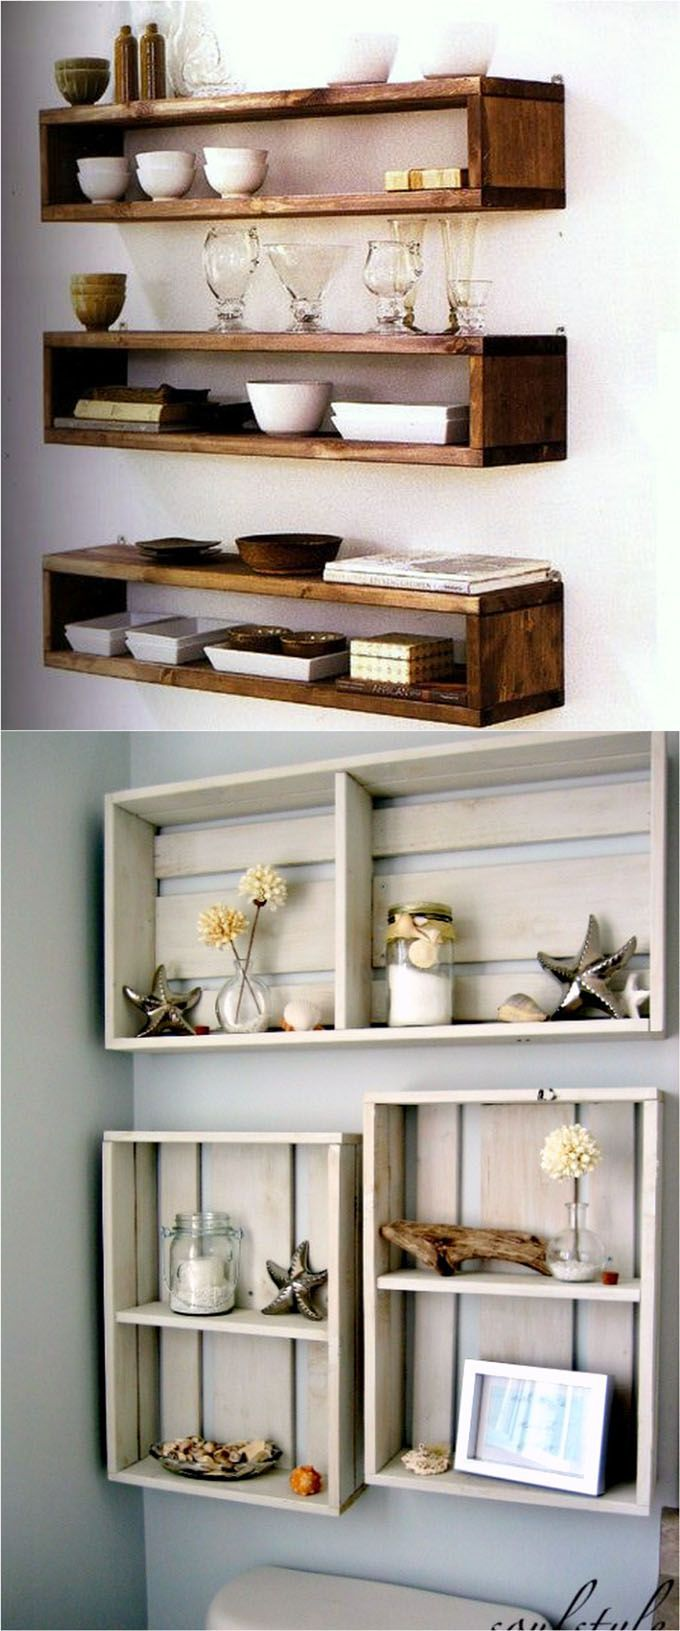 16 Easy and Stylish DIY Floating Shelves Wall Shelves Design